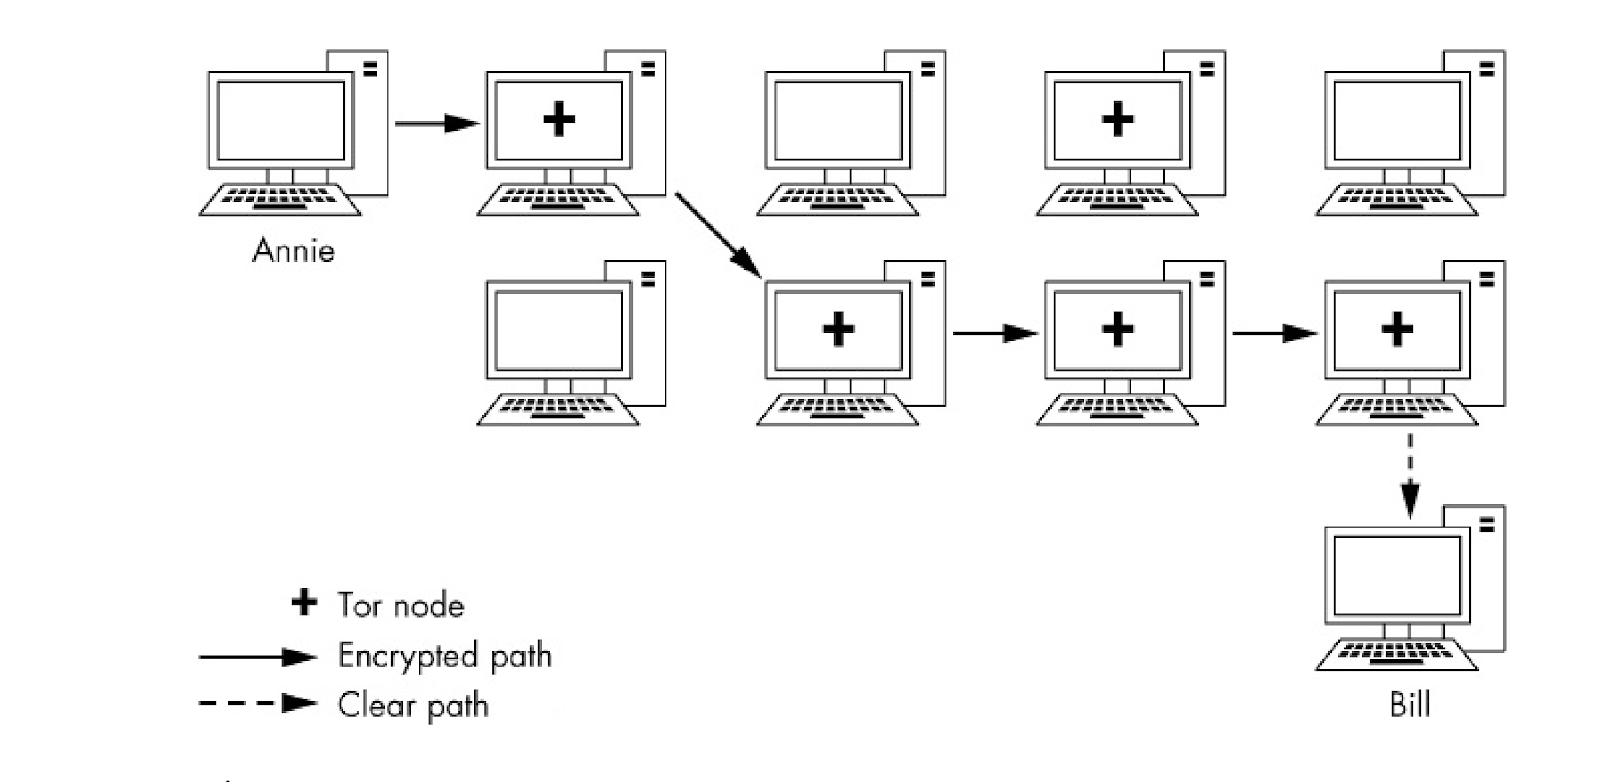 tor uses encrypted traffic data